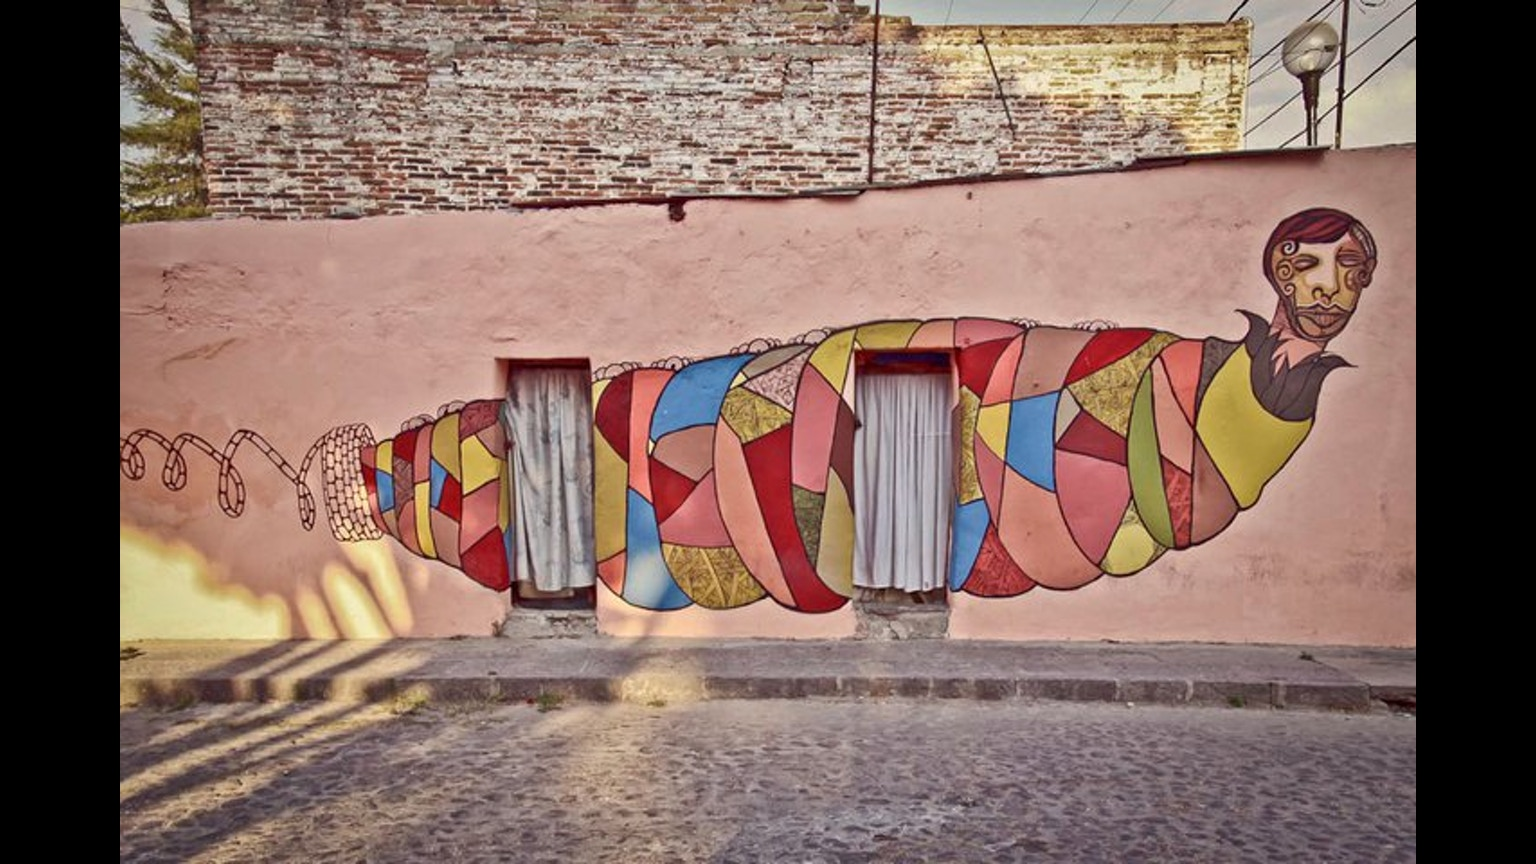 Puebla mural city by colectivo tomate kickstarter for City mural projects